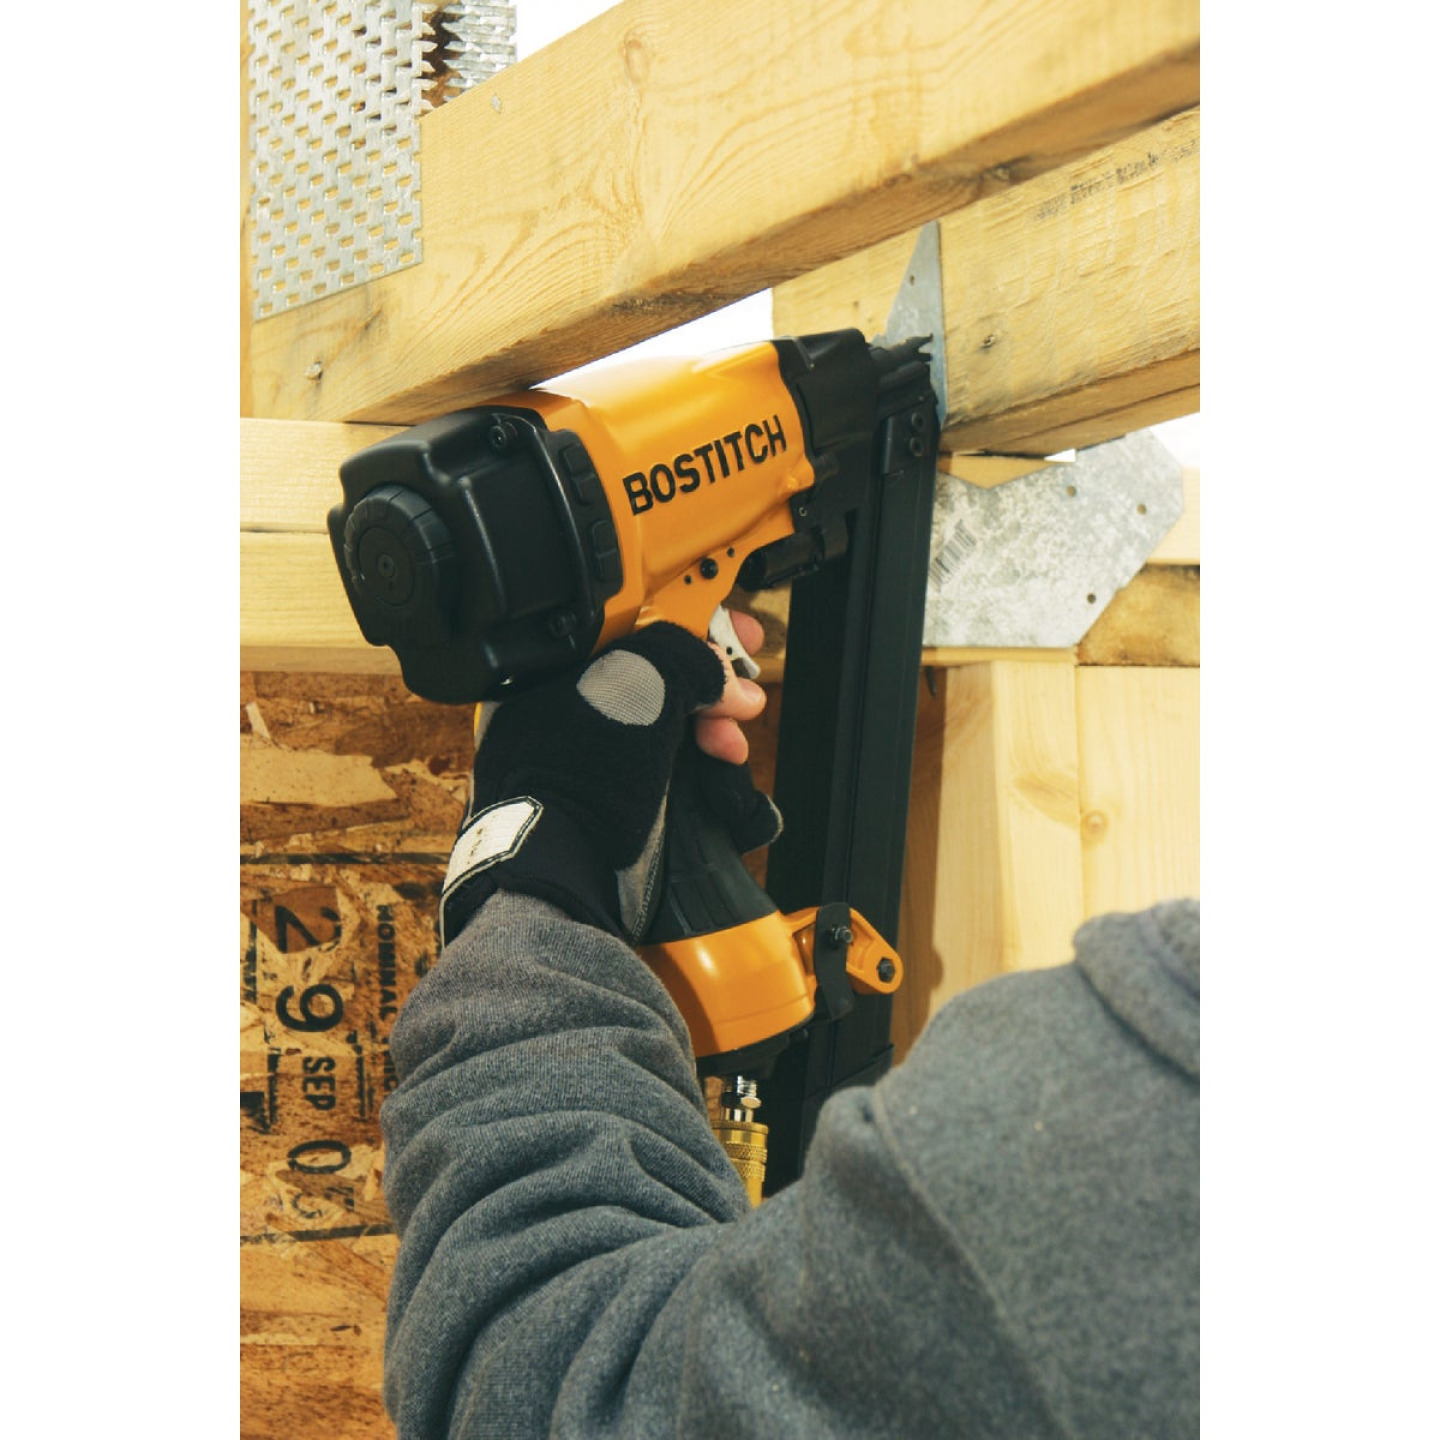 Bostitch 35 Degree 1-1/2 In. Paper Tape Strapshot Metal Connector Framing Nailer with Short Magazine Image 2